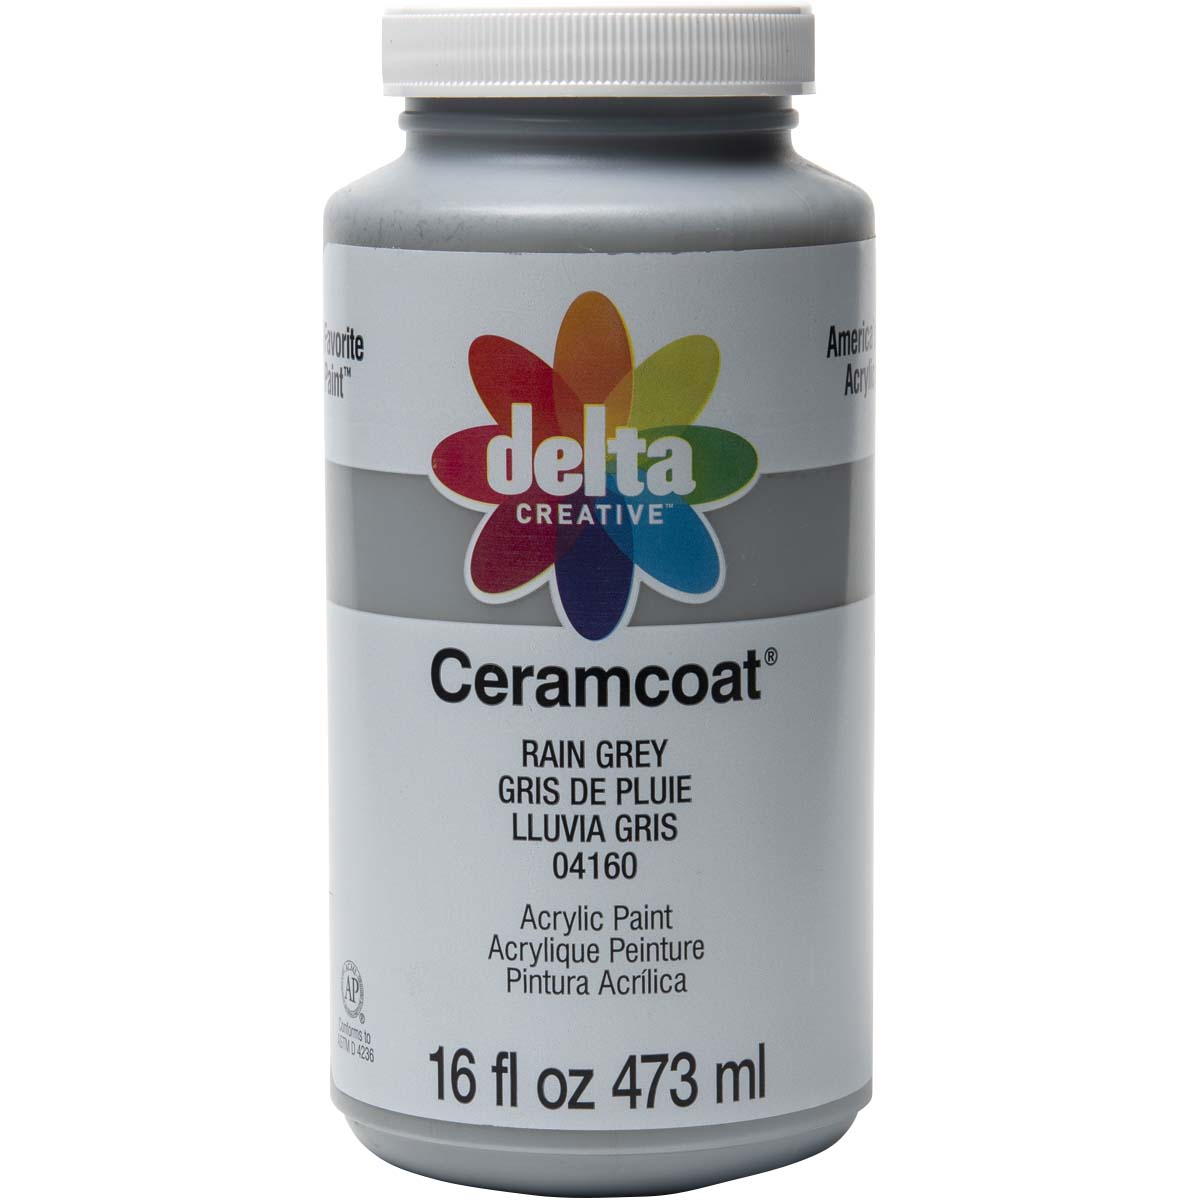 Delta Ceramcoat ® Acrylic Paint - Rain Grey, 16 oz.